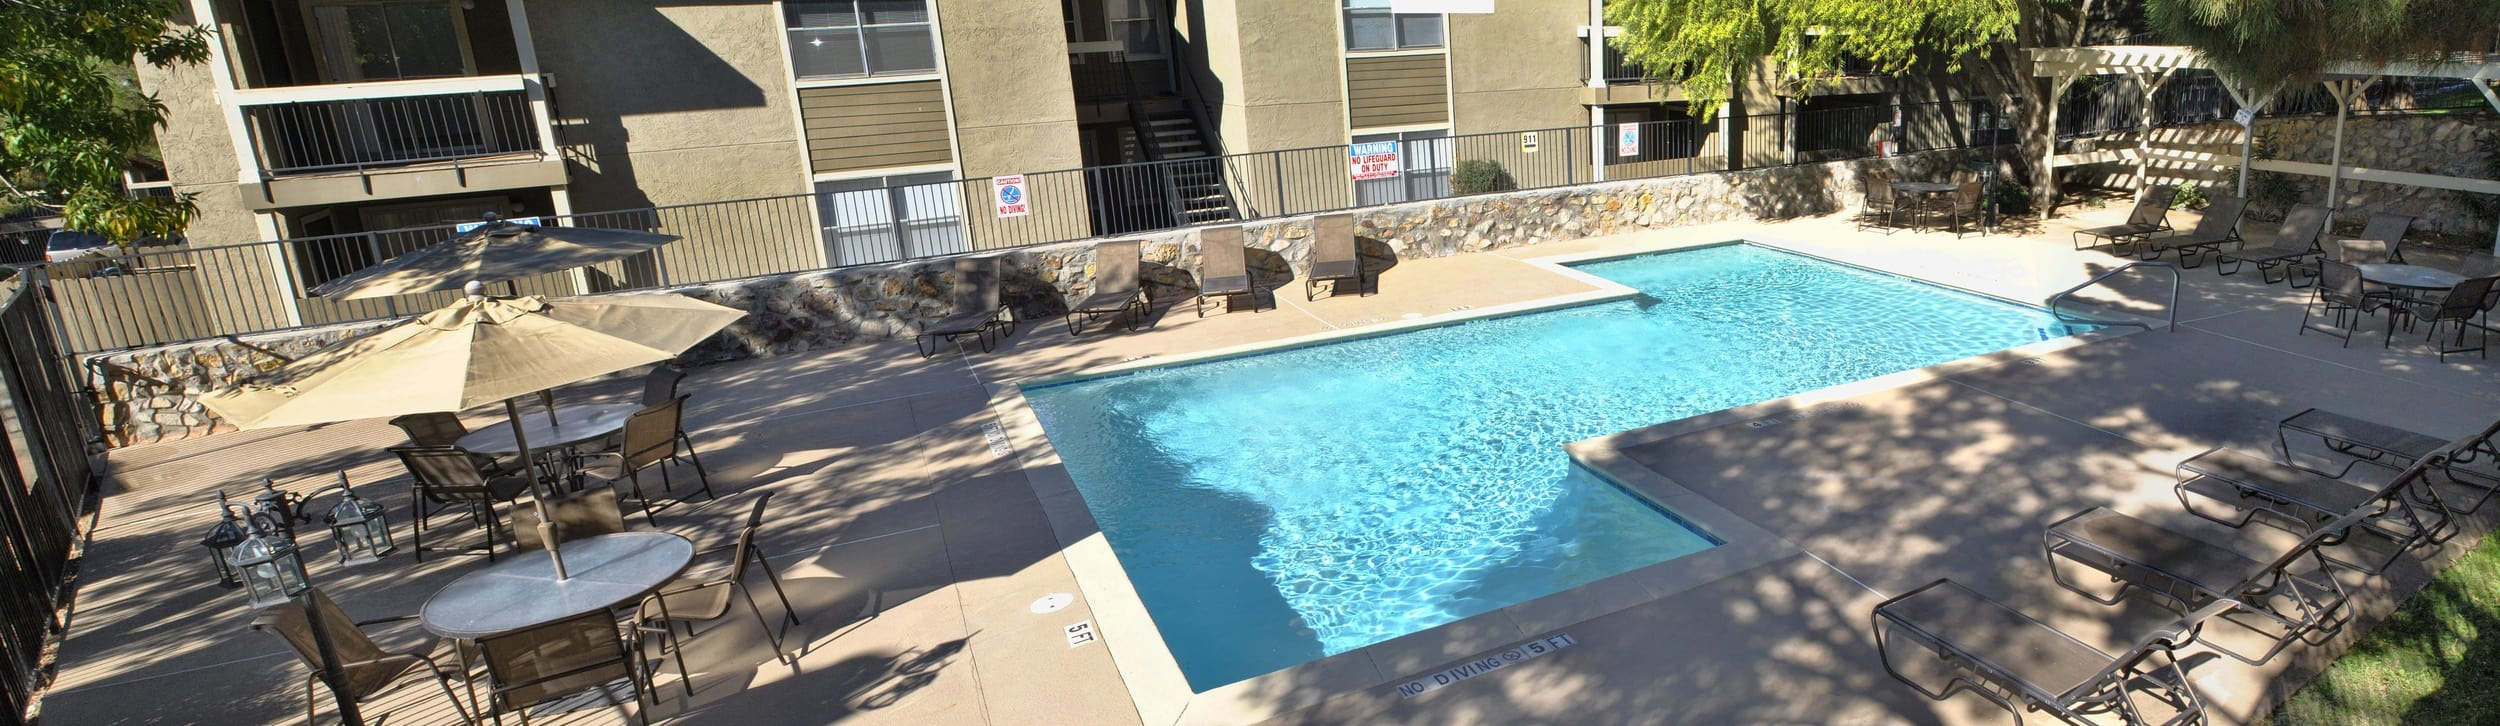 Our apartments in El Paso offer resort-style amenities for our residents